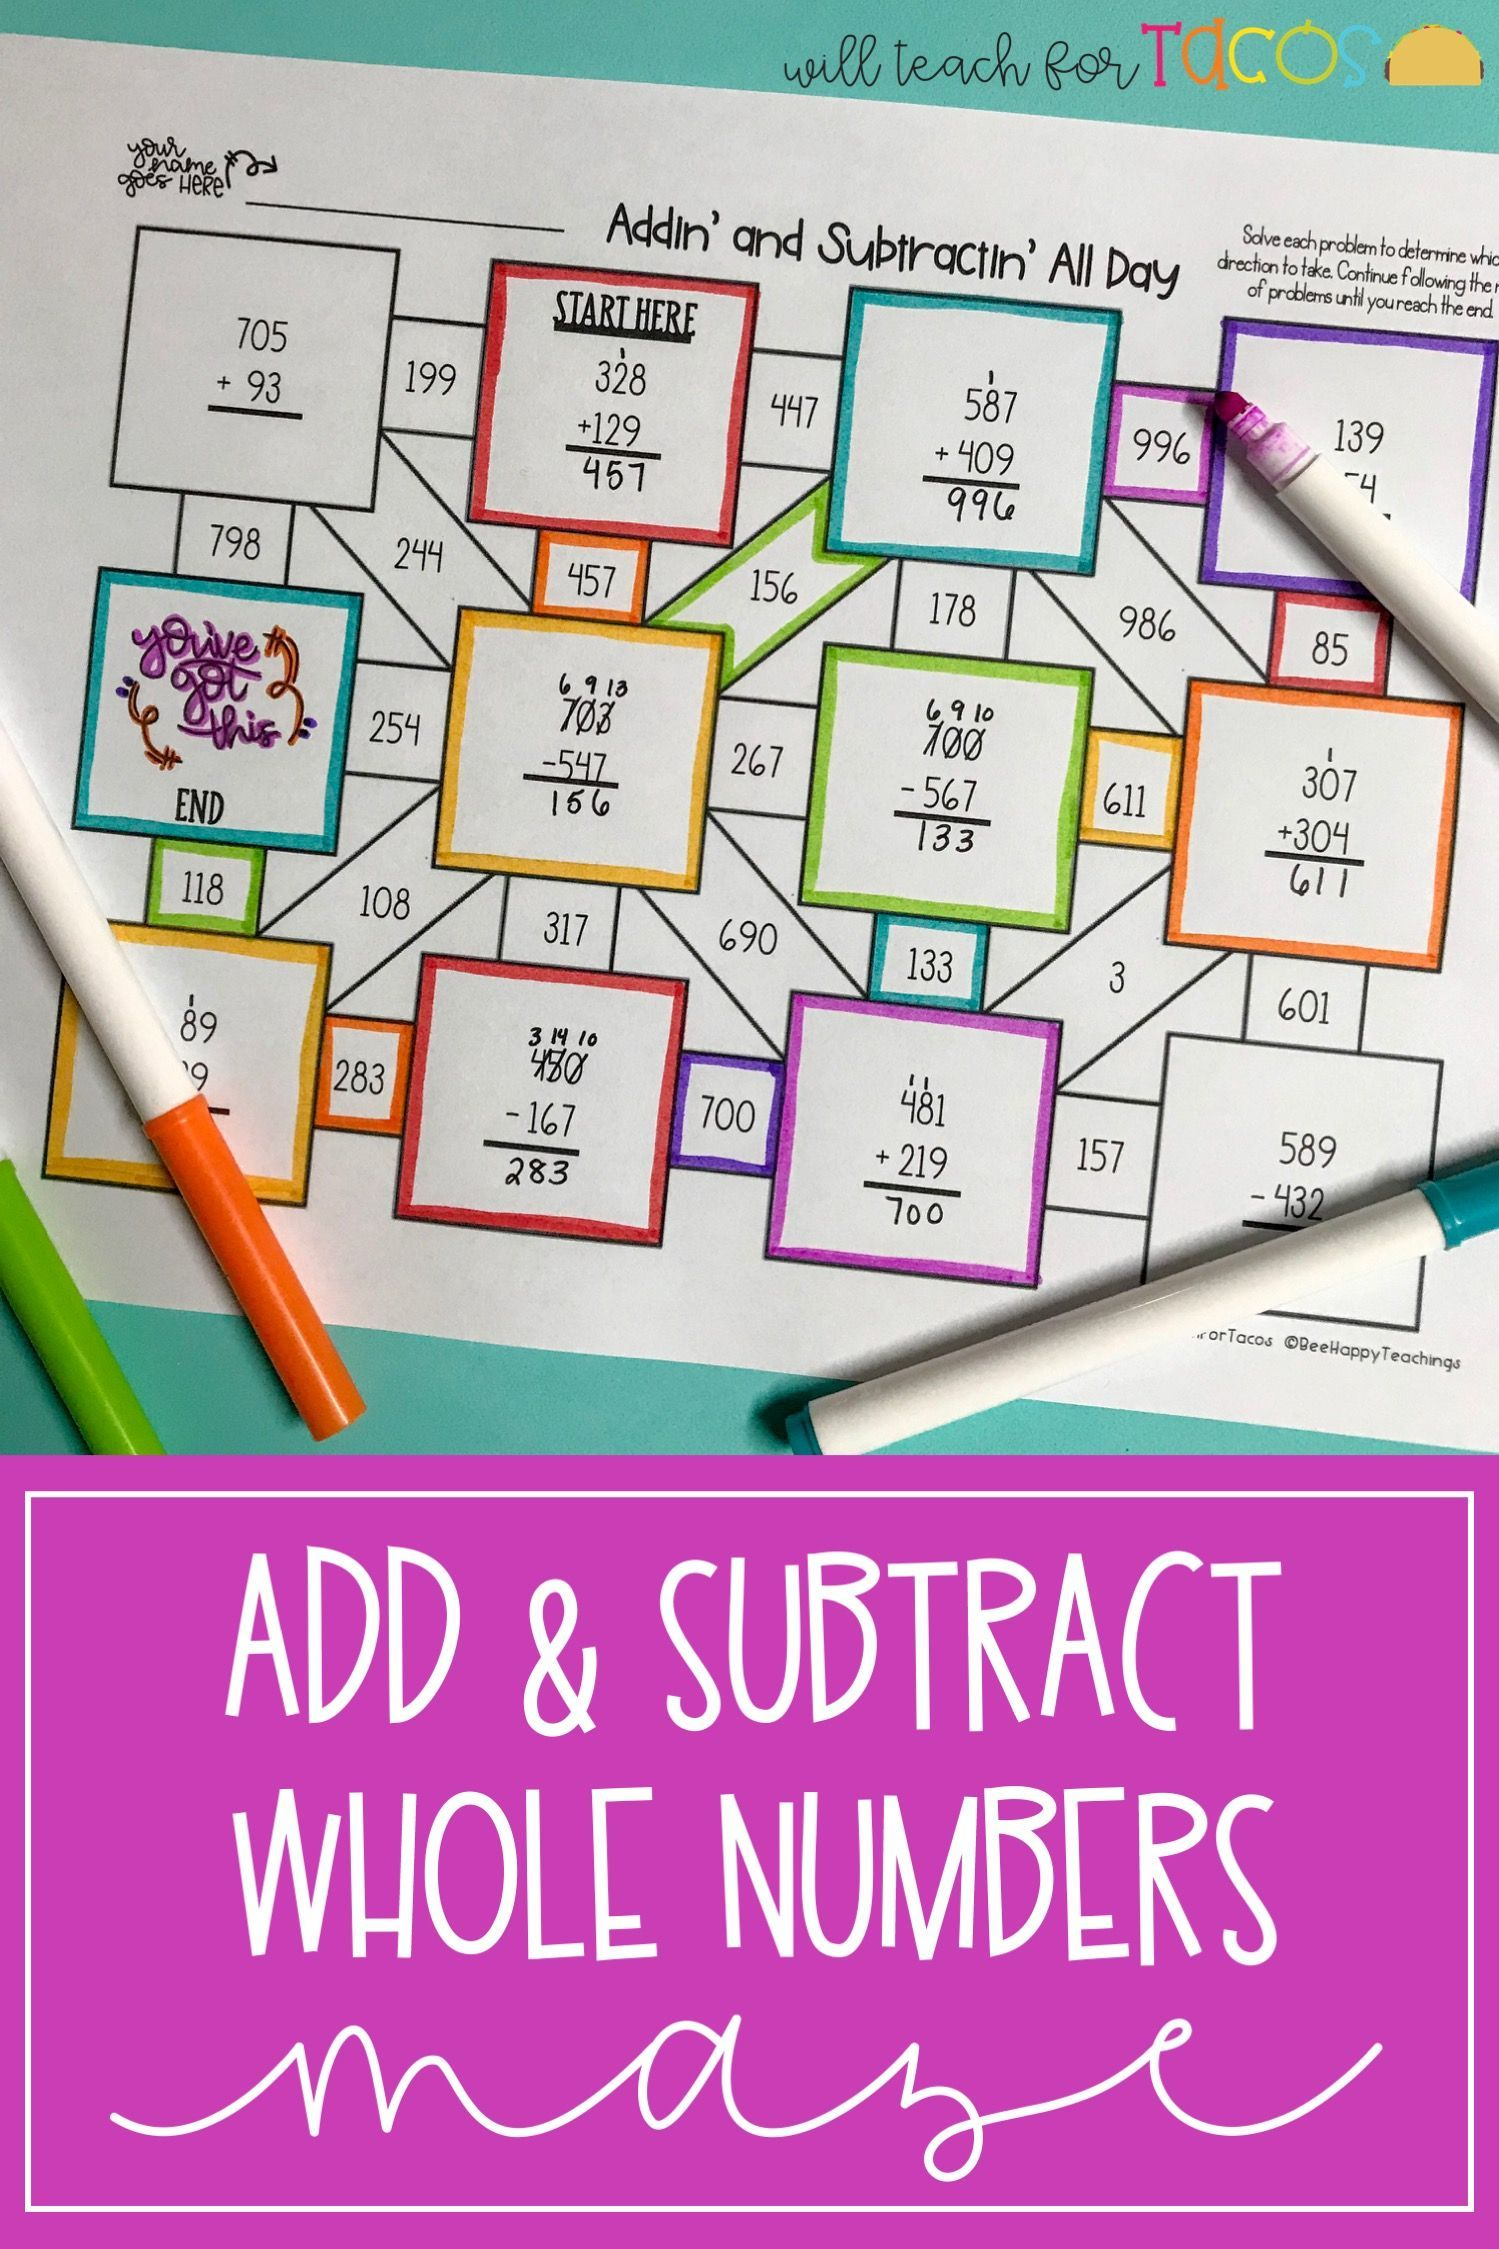 Addition And Subtraction Maze 3 4a Elementary Math Games Addition And Subtraction Third Grade Math Games [ 2249 x 1499 Pixel ]